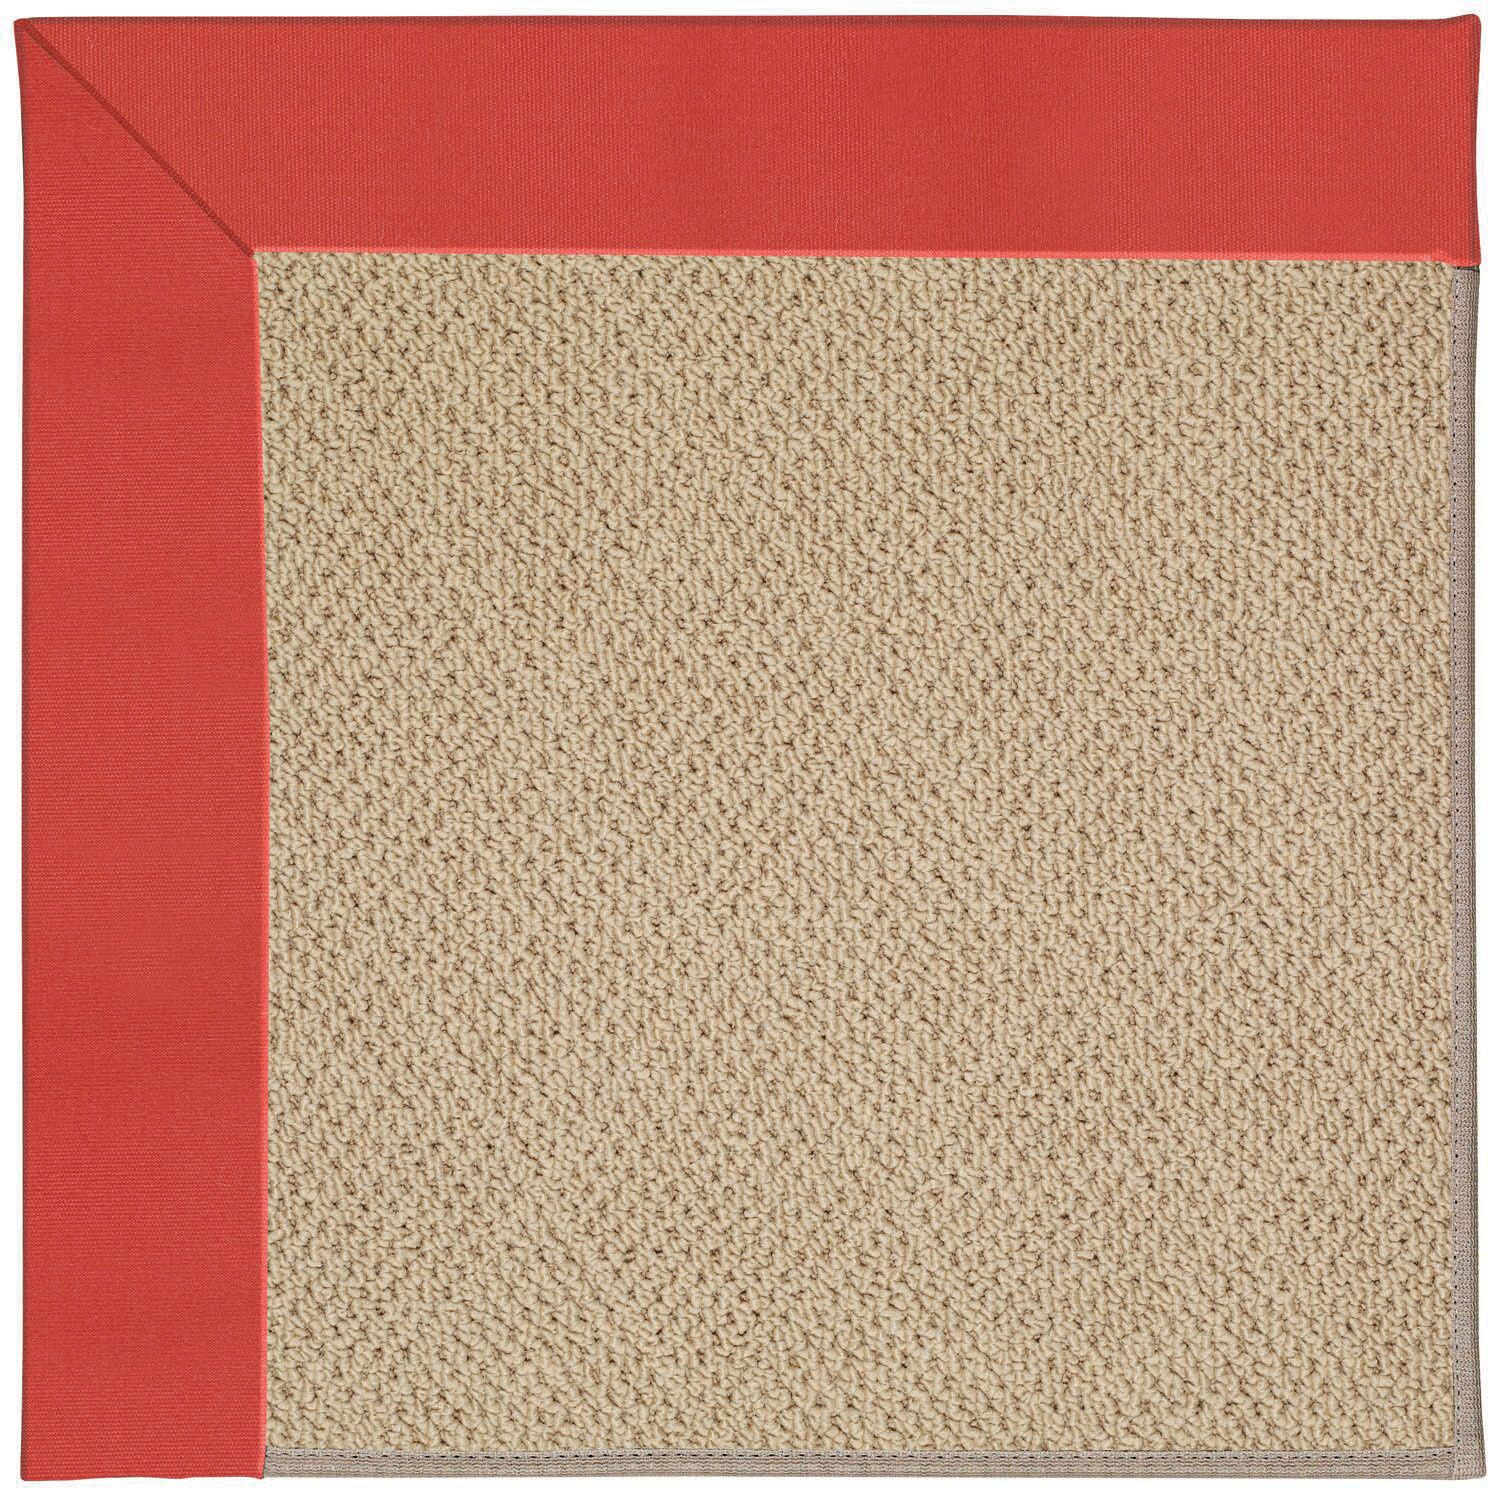 Lisle Machine Tufted Sunset Red/Brown Indoor/Outdoor Area Rug Rug Size: Square 4'